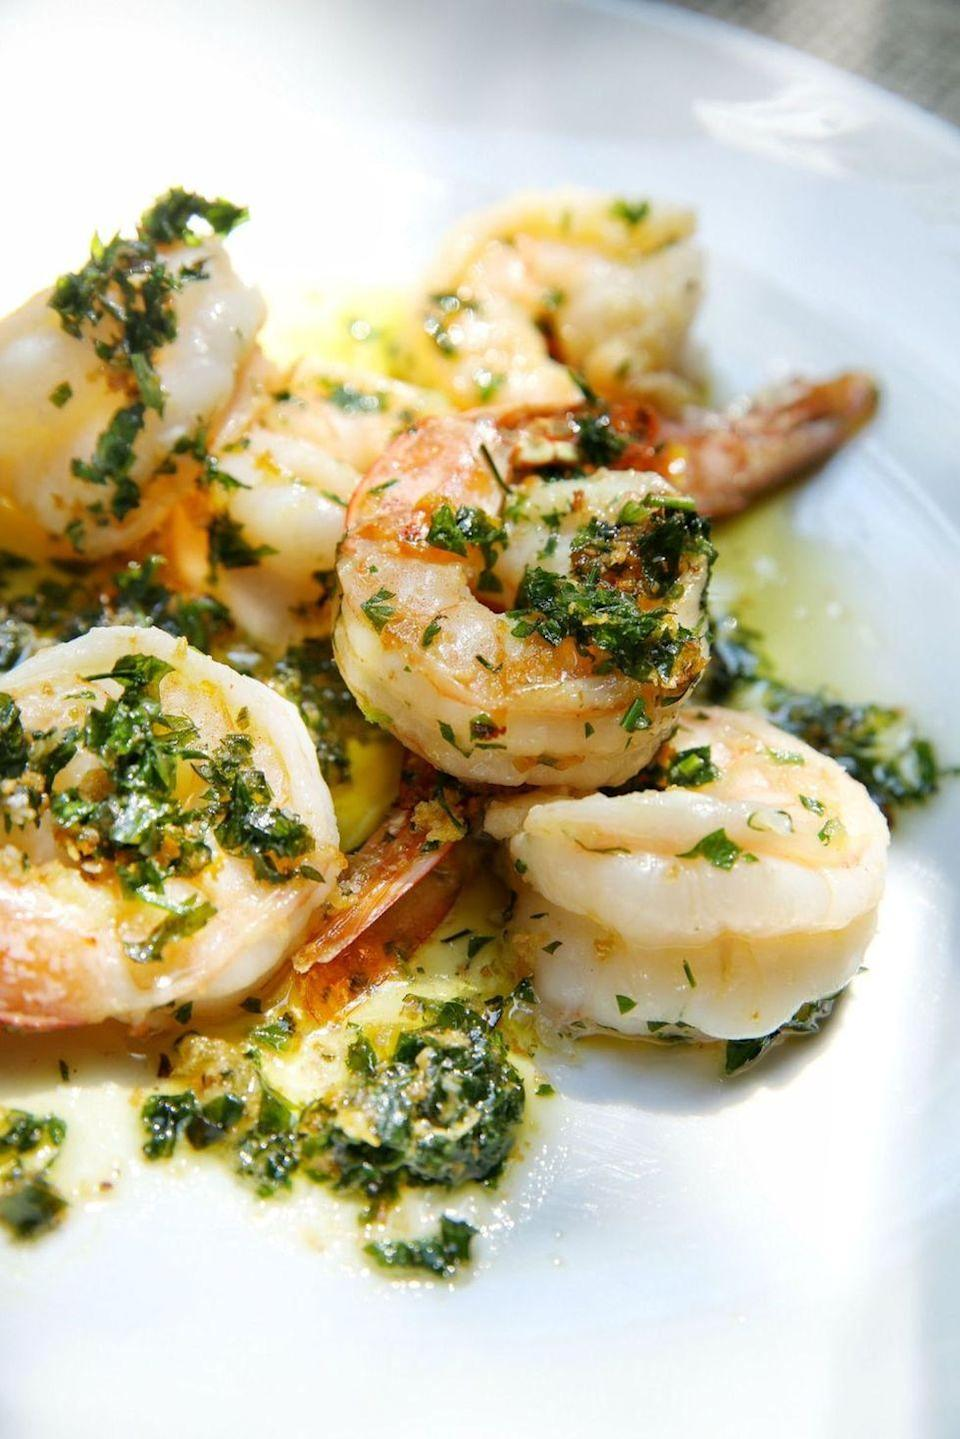 """<p>The simple combination of garlic, butter and parsley never fails.<br><br>Get the recipe from <a href=""""https://www.delish.com/cooking/recipe-ideas/recipes/a48673/garlic-parsley-shrimp-recipe/"""" rel=""""nofollow noopener"""" target=""""_blank"""" data-ylk=""""slk:Delish"""" class=""""link rapid-noclick-resp"""">Delish</a>.</p>"""